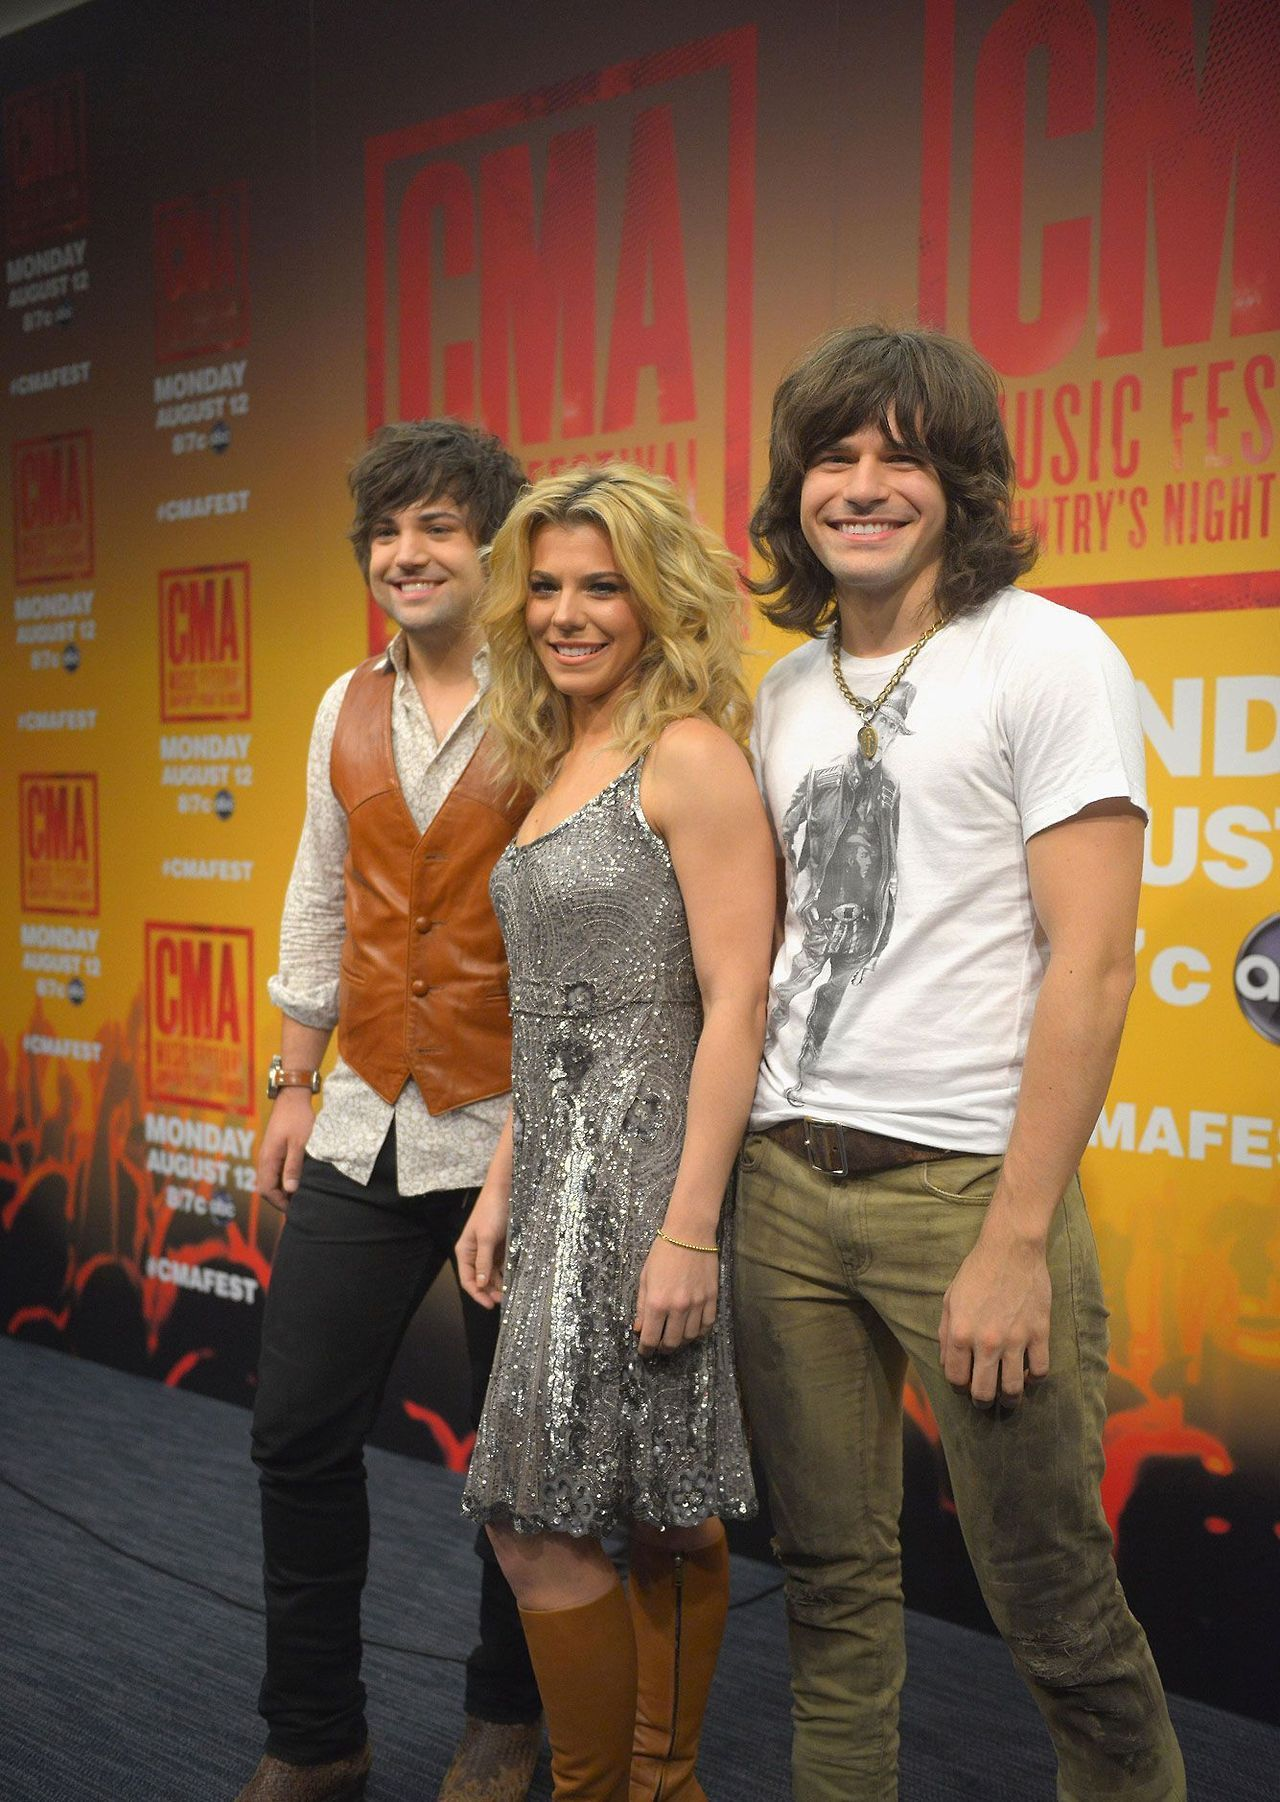 The Band Perry Country Music Singers Country Western Singers